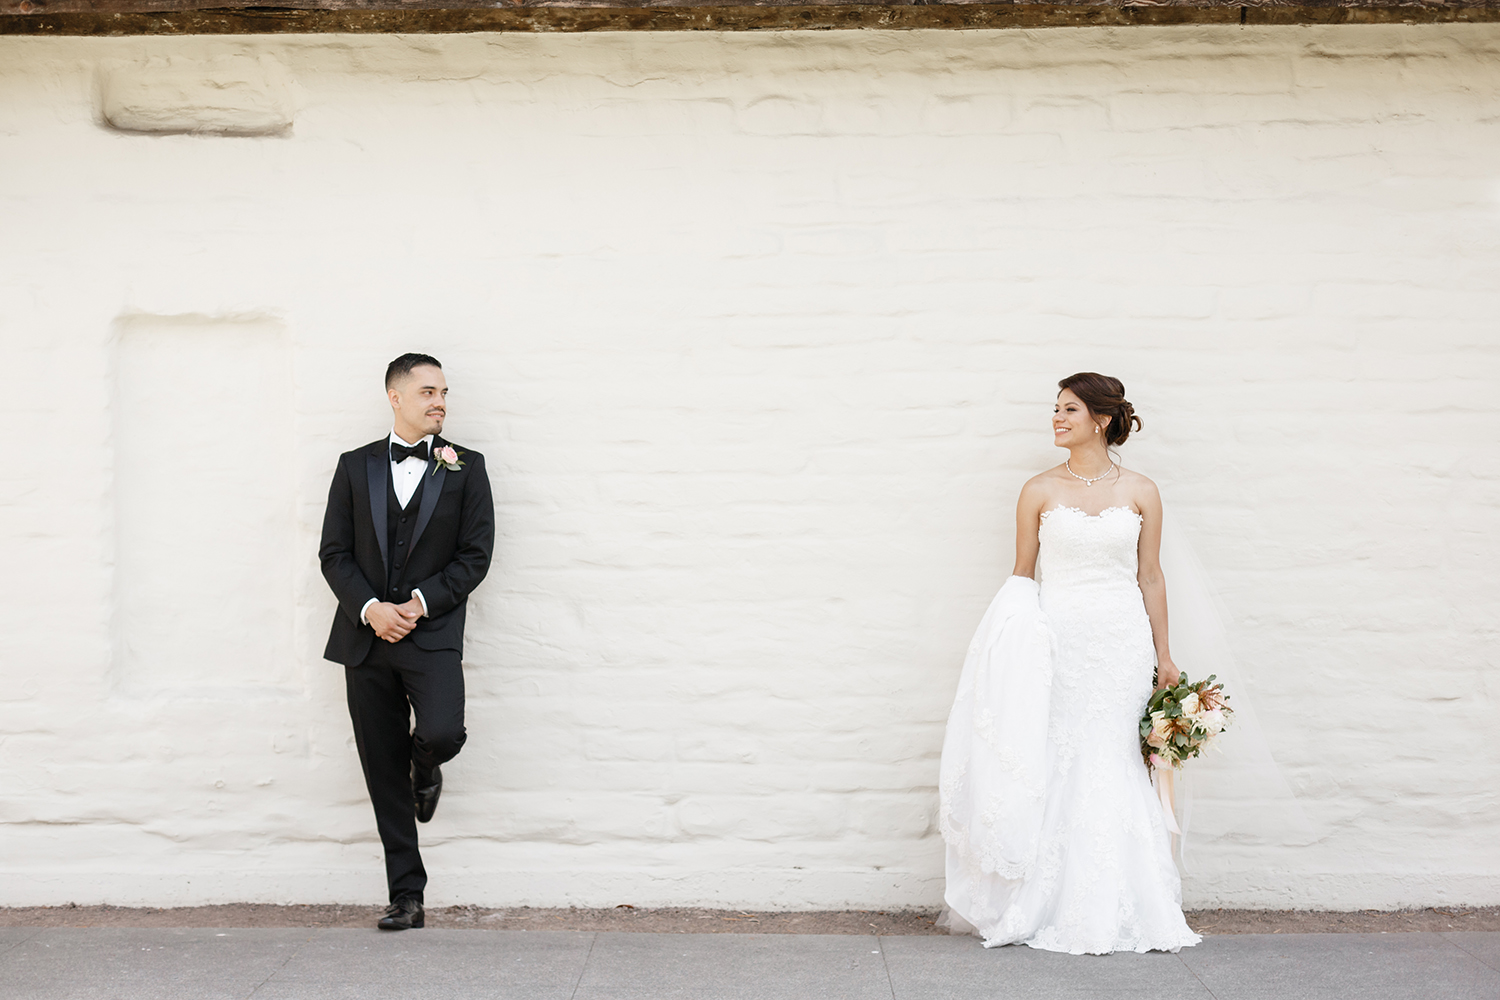 Bride and groom standing by an adobe wall, looking at each other.